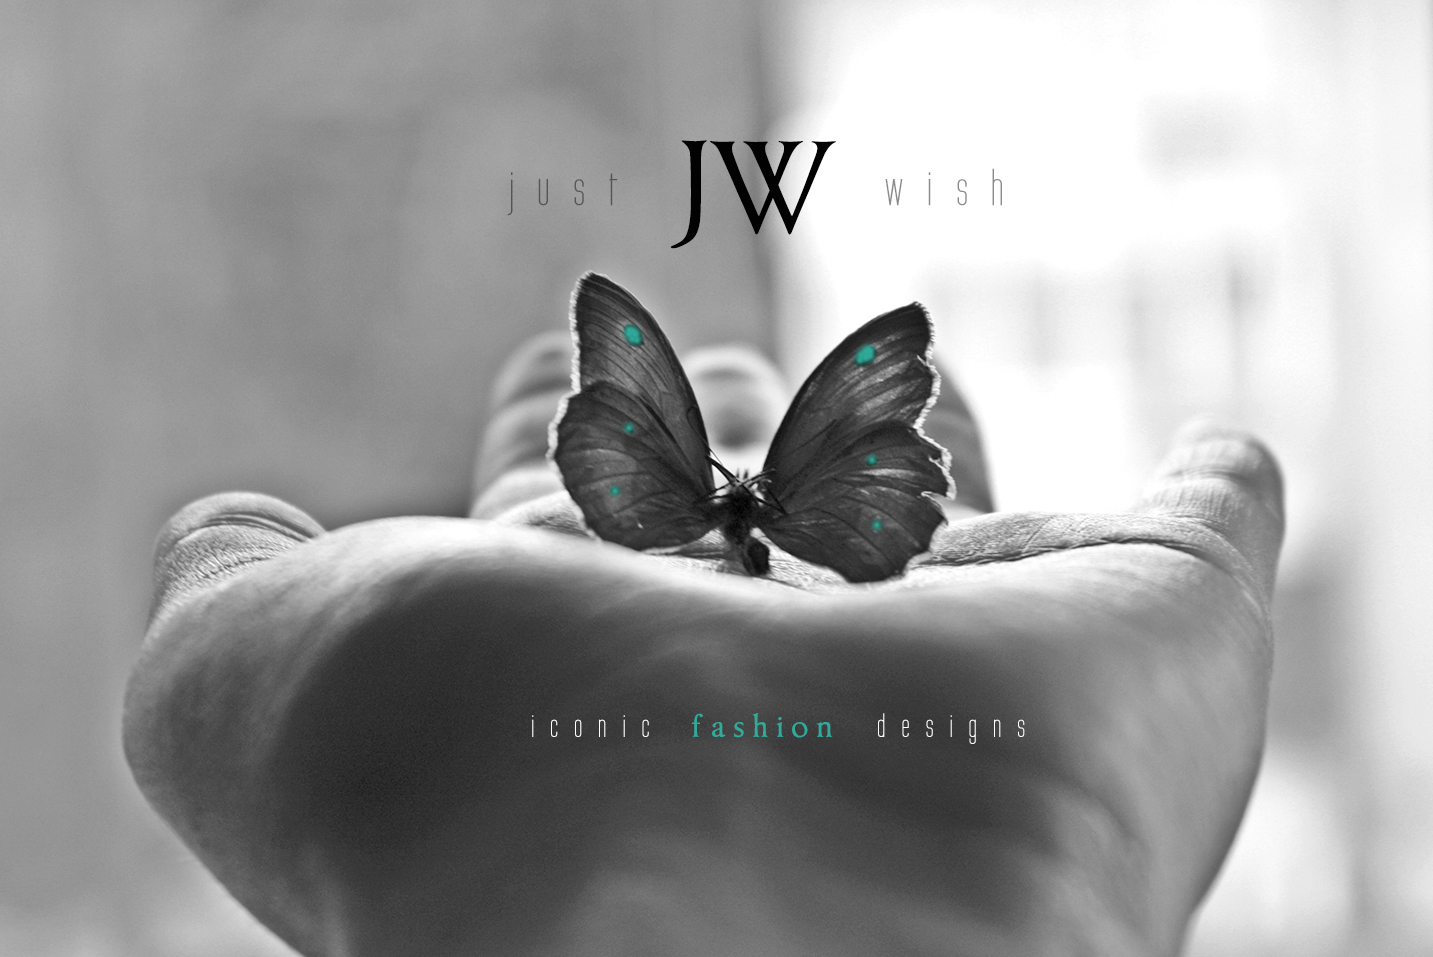 Just Wish - Iconic Fashion Designs